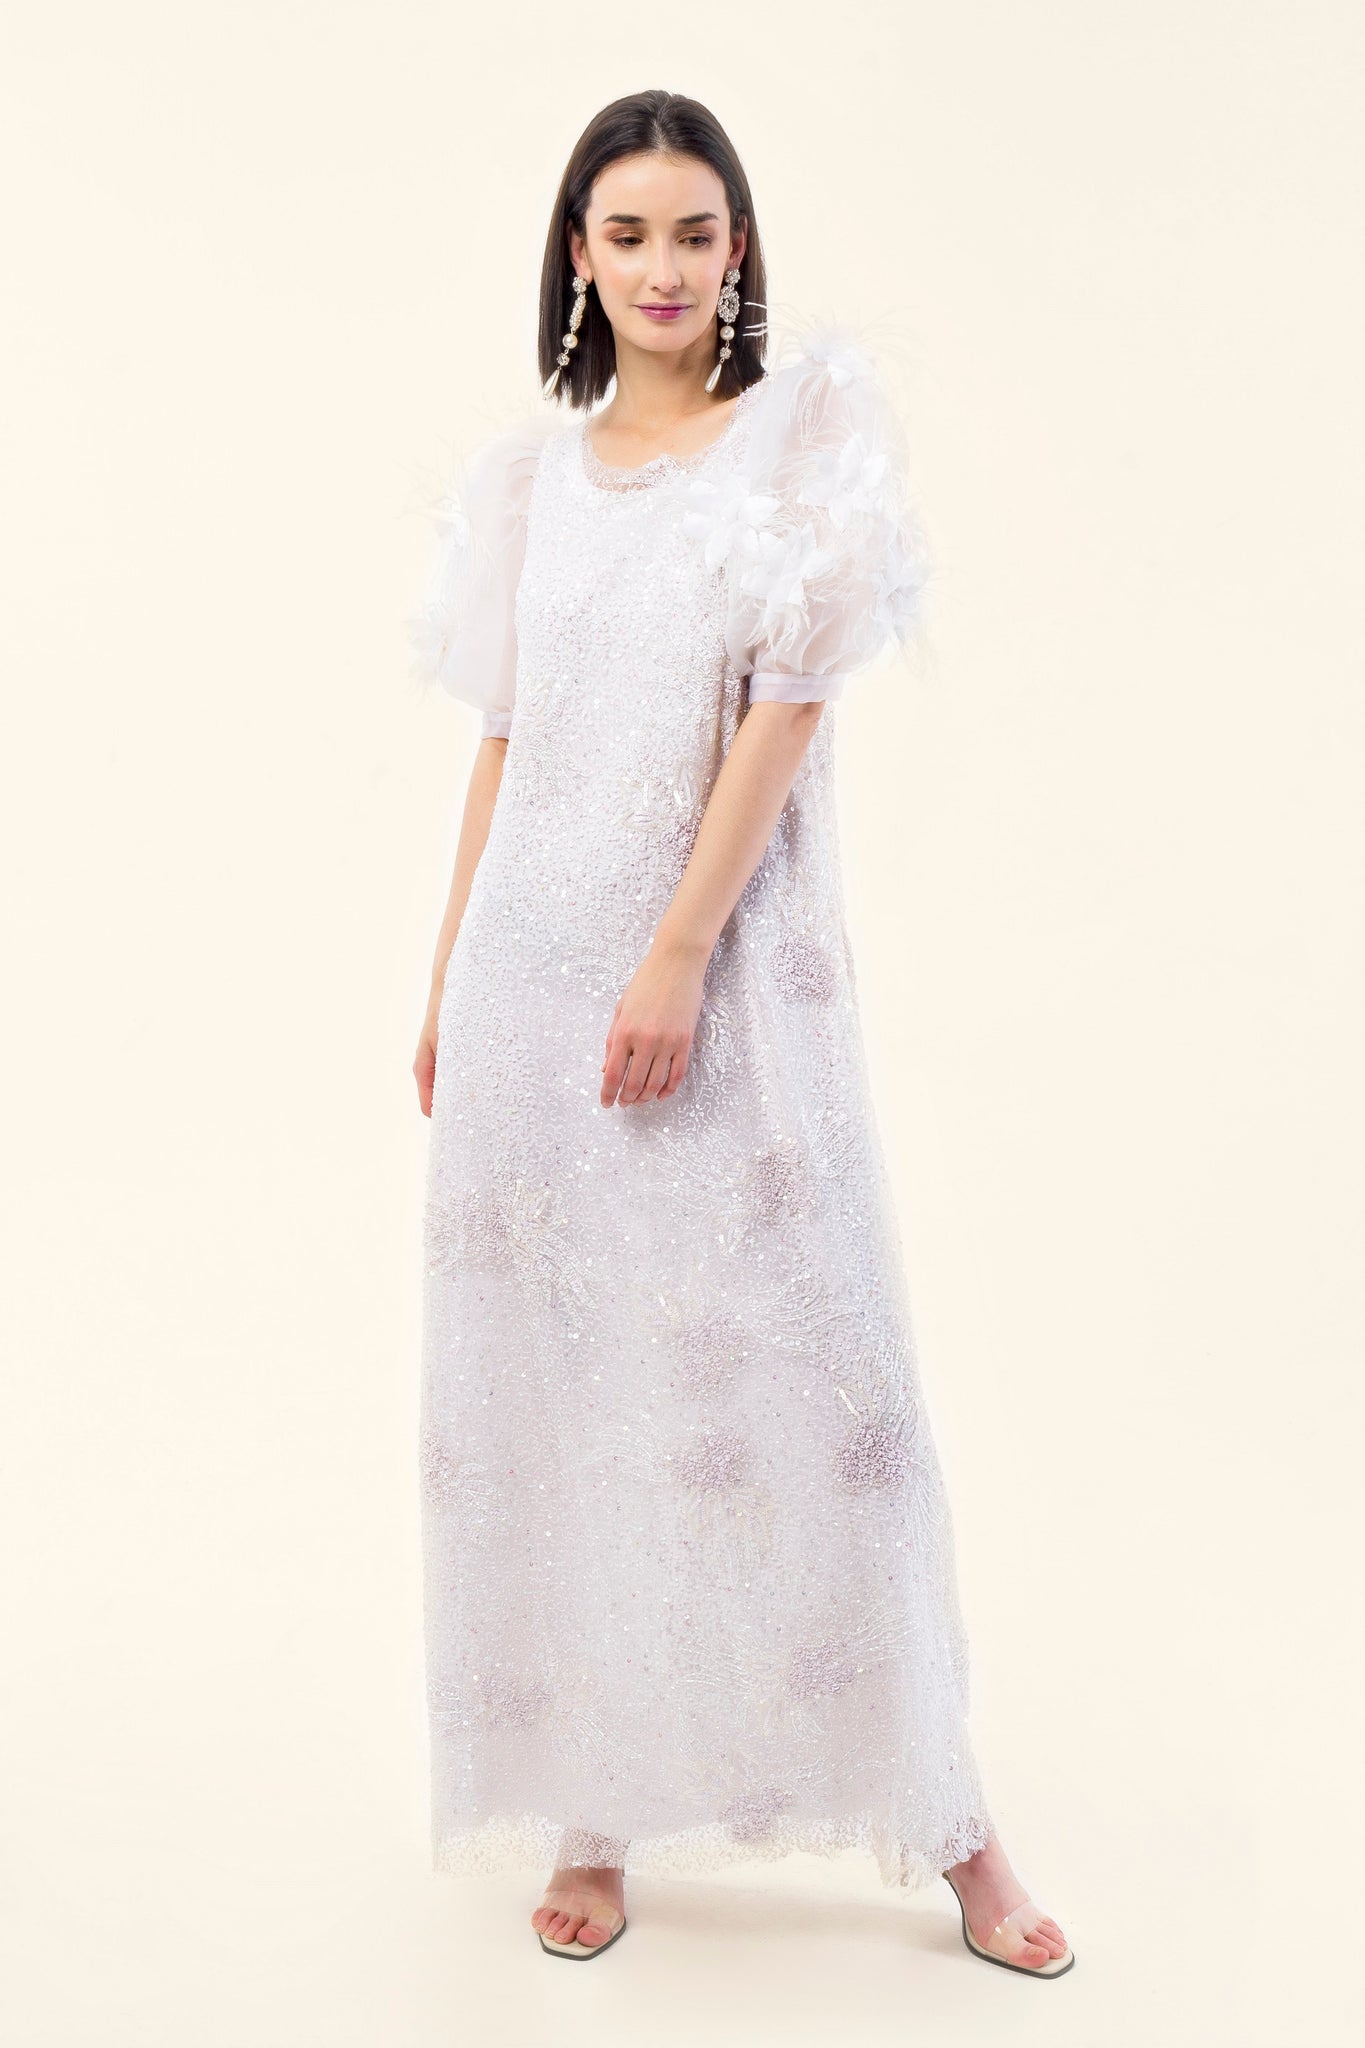 EMBROIDERY TULLE DRESS WITH ORGANZA AND FLOWERS. - VEREL